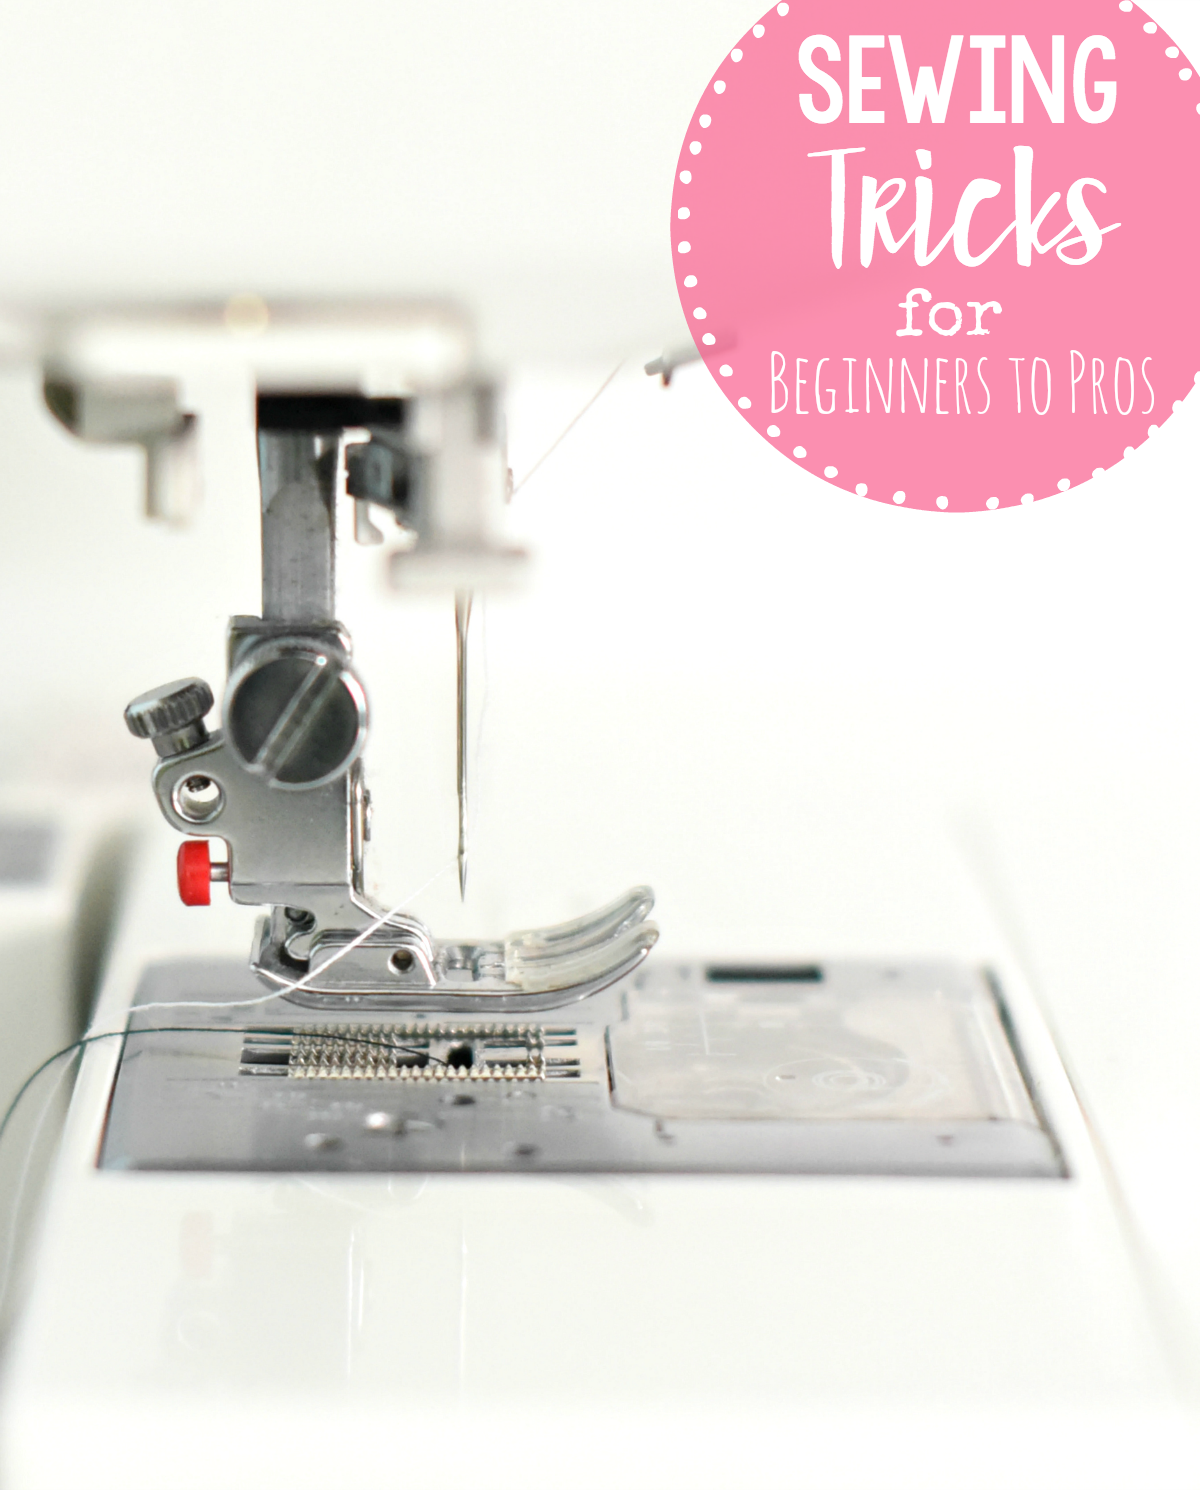 Sewing Tips for Beginners to Pros-Try all these wonderful sewing tips, tricks and hacks to help you master your sewing skills. #sew #sewing #sewingtips #sewingtricks #sewinghacks